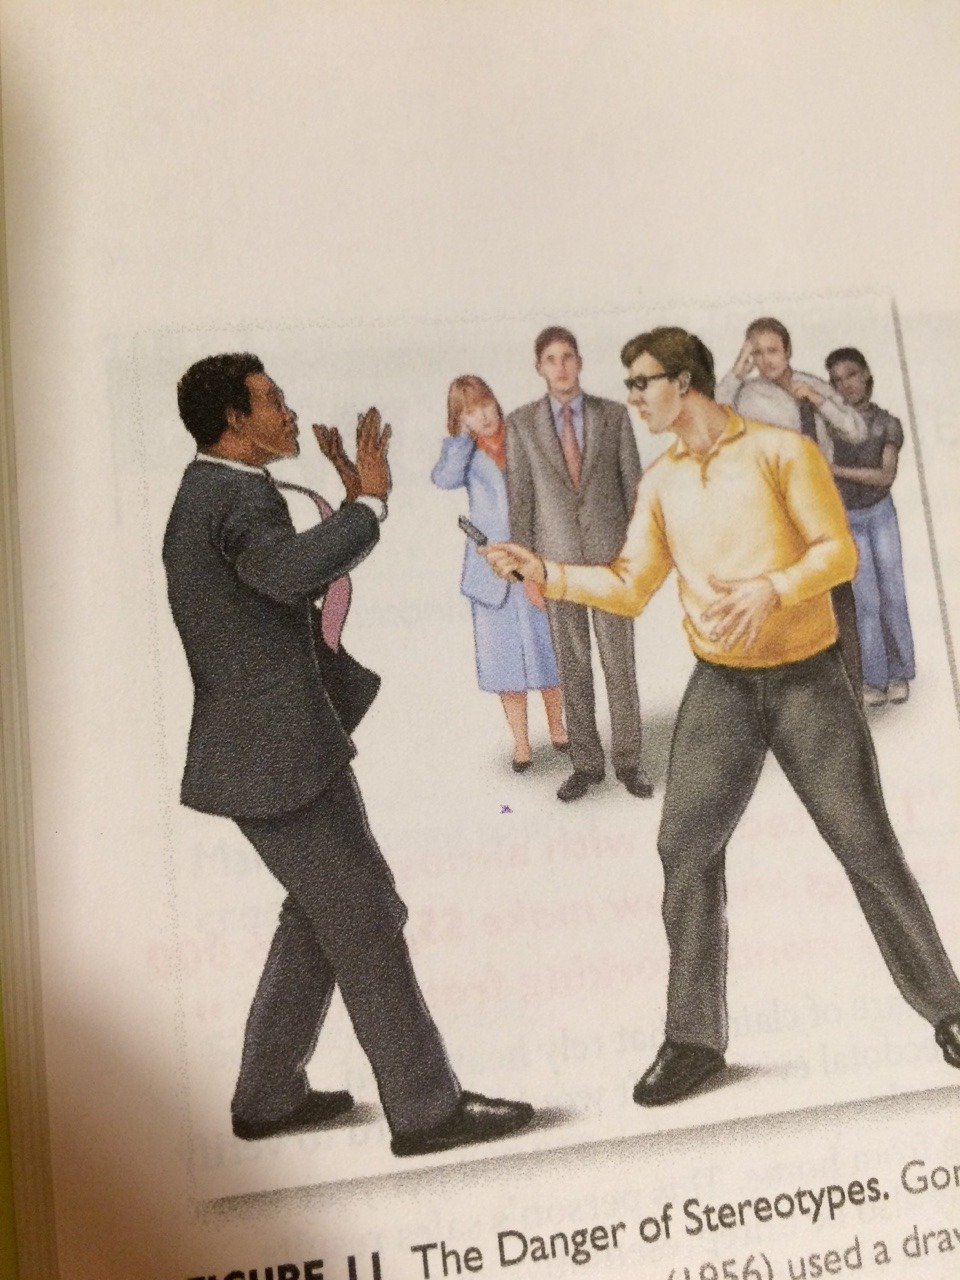 thoseinperil: